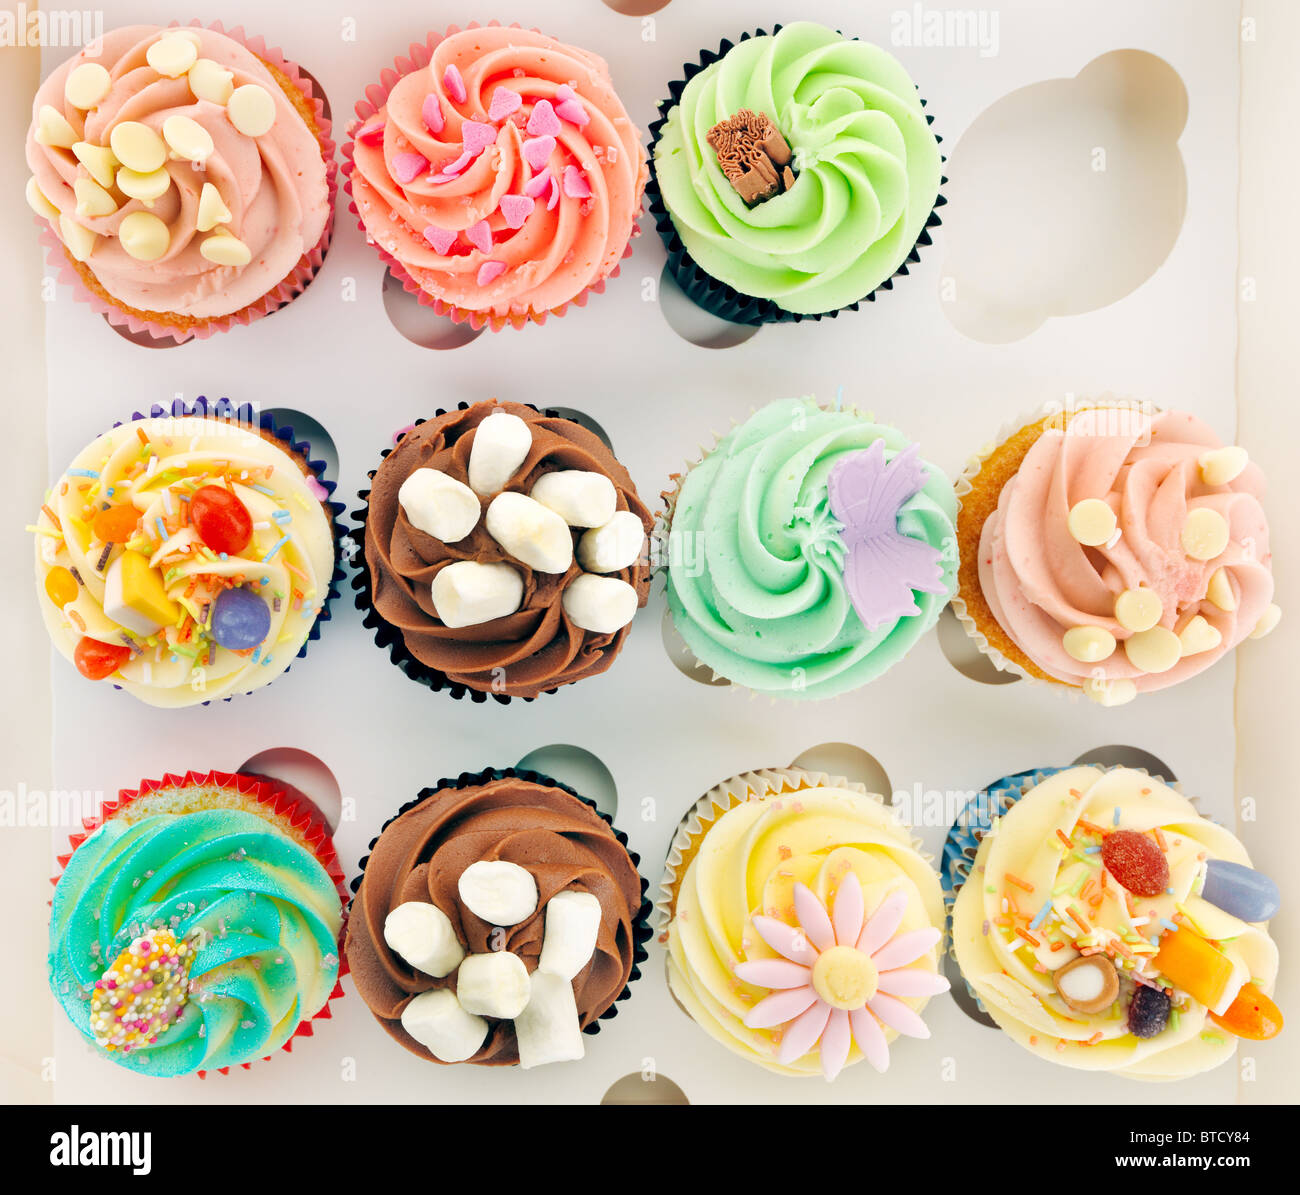 "Cupcakes ""in box"" Foto Stock"